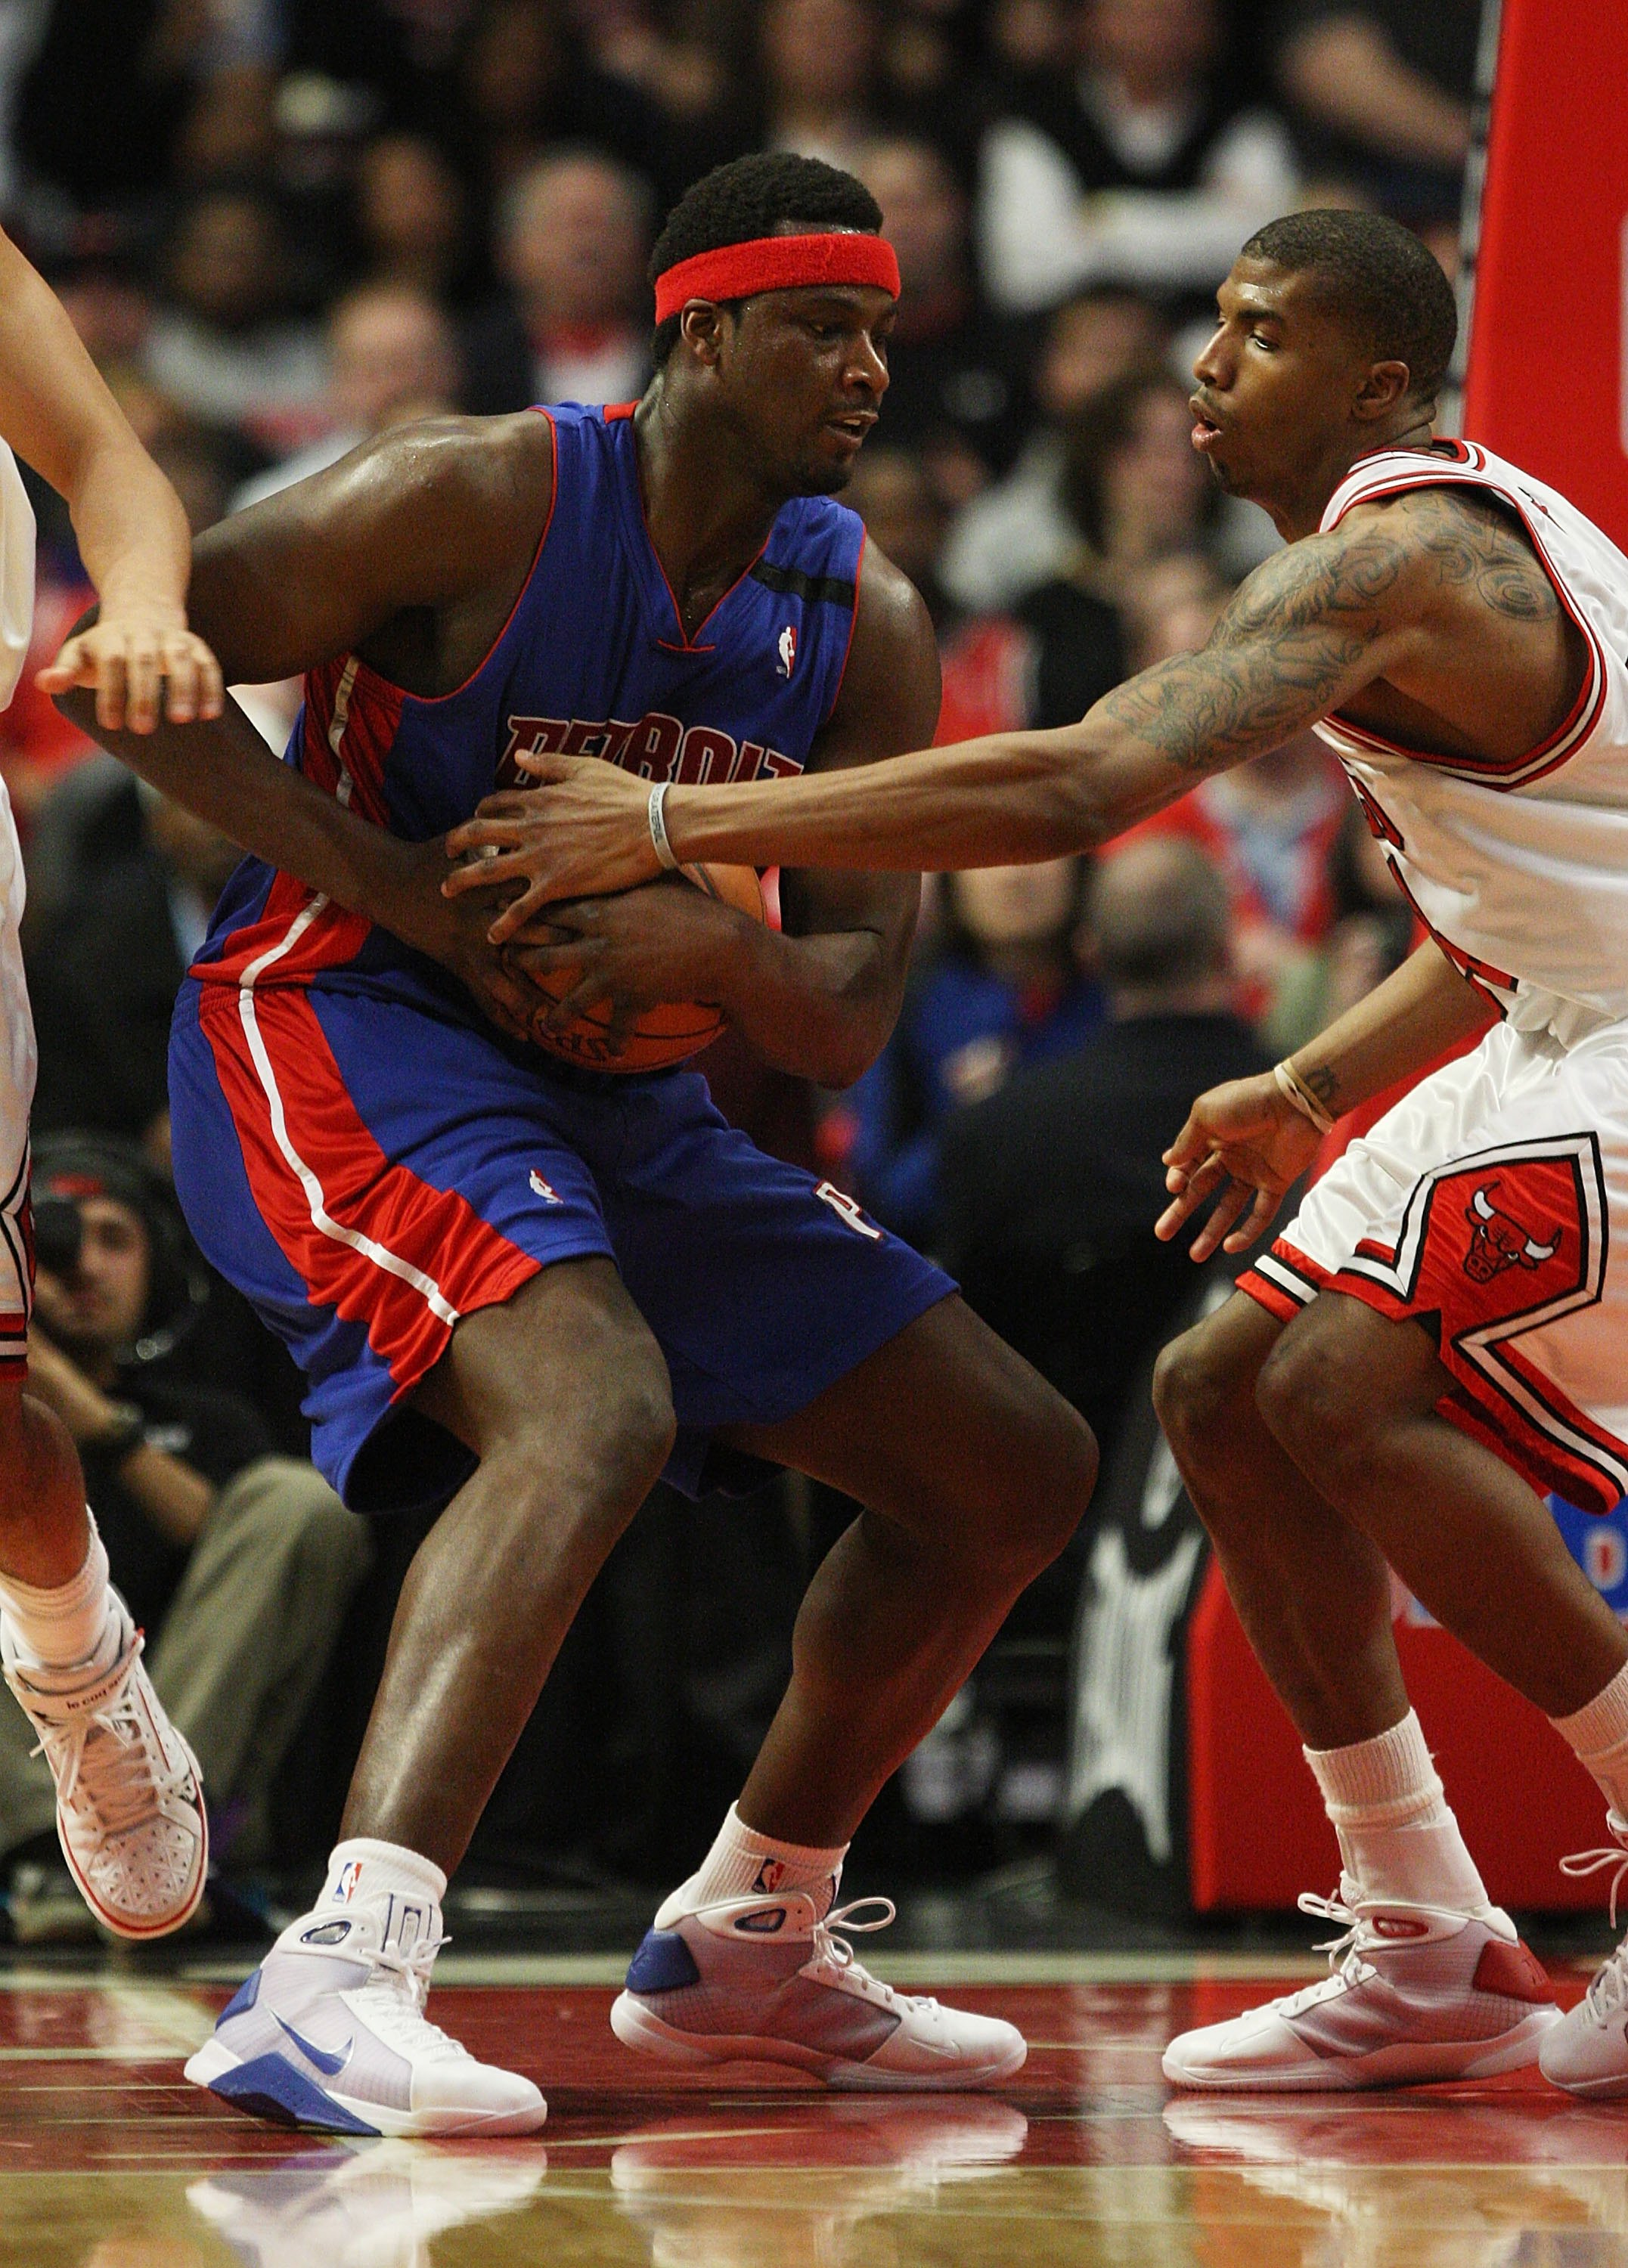 CHICAGO - MARCH 24: Tyrus Thomas #24 of the Chicago Bulls tries to steal the ball away from Kwame Brown #38 of the Detroit Pistons on March 24, 2009 at the United Center in Chicago, Illinois. The Bulls defeated the Pistons 99-91. NOTE TO USER: User expres